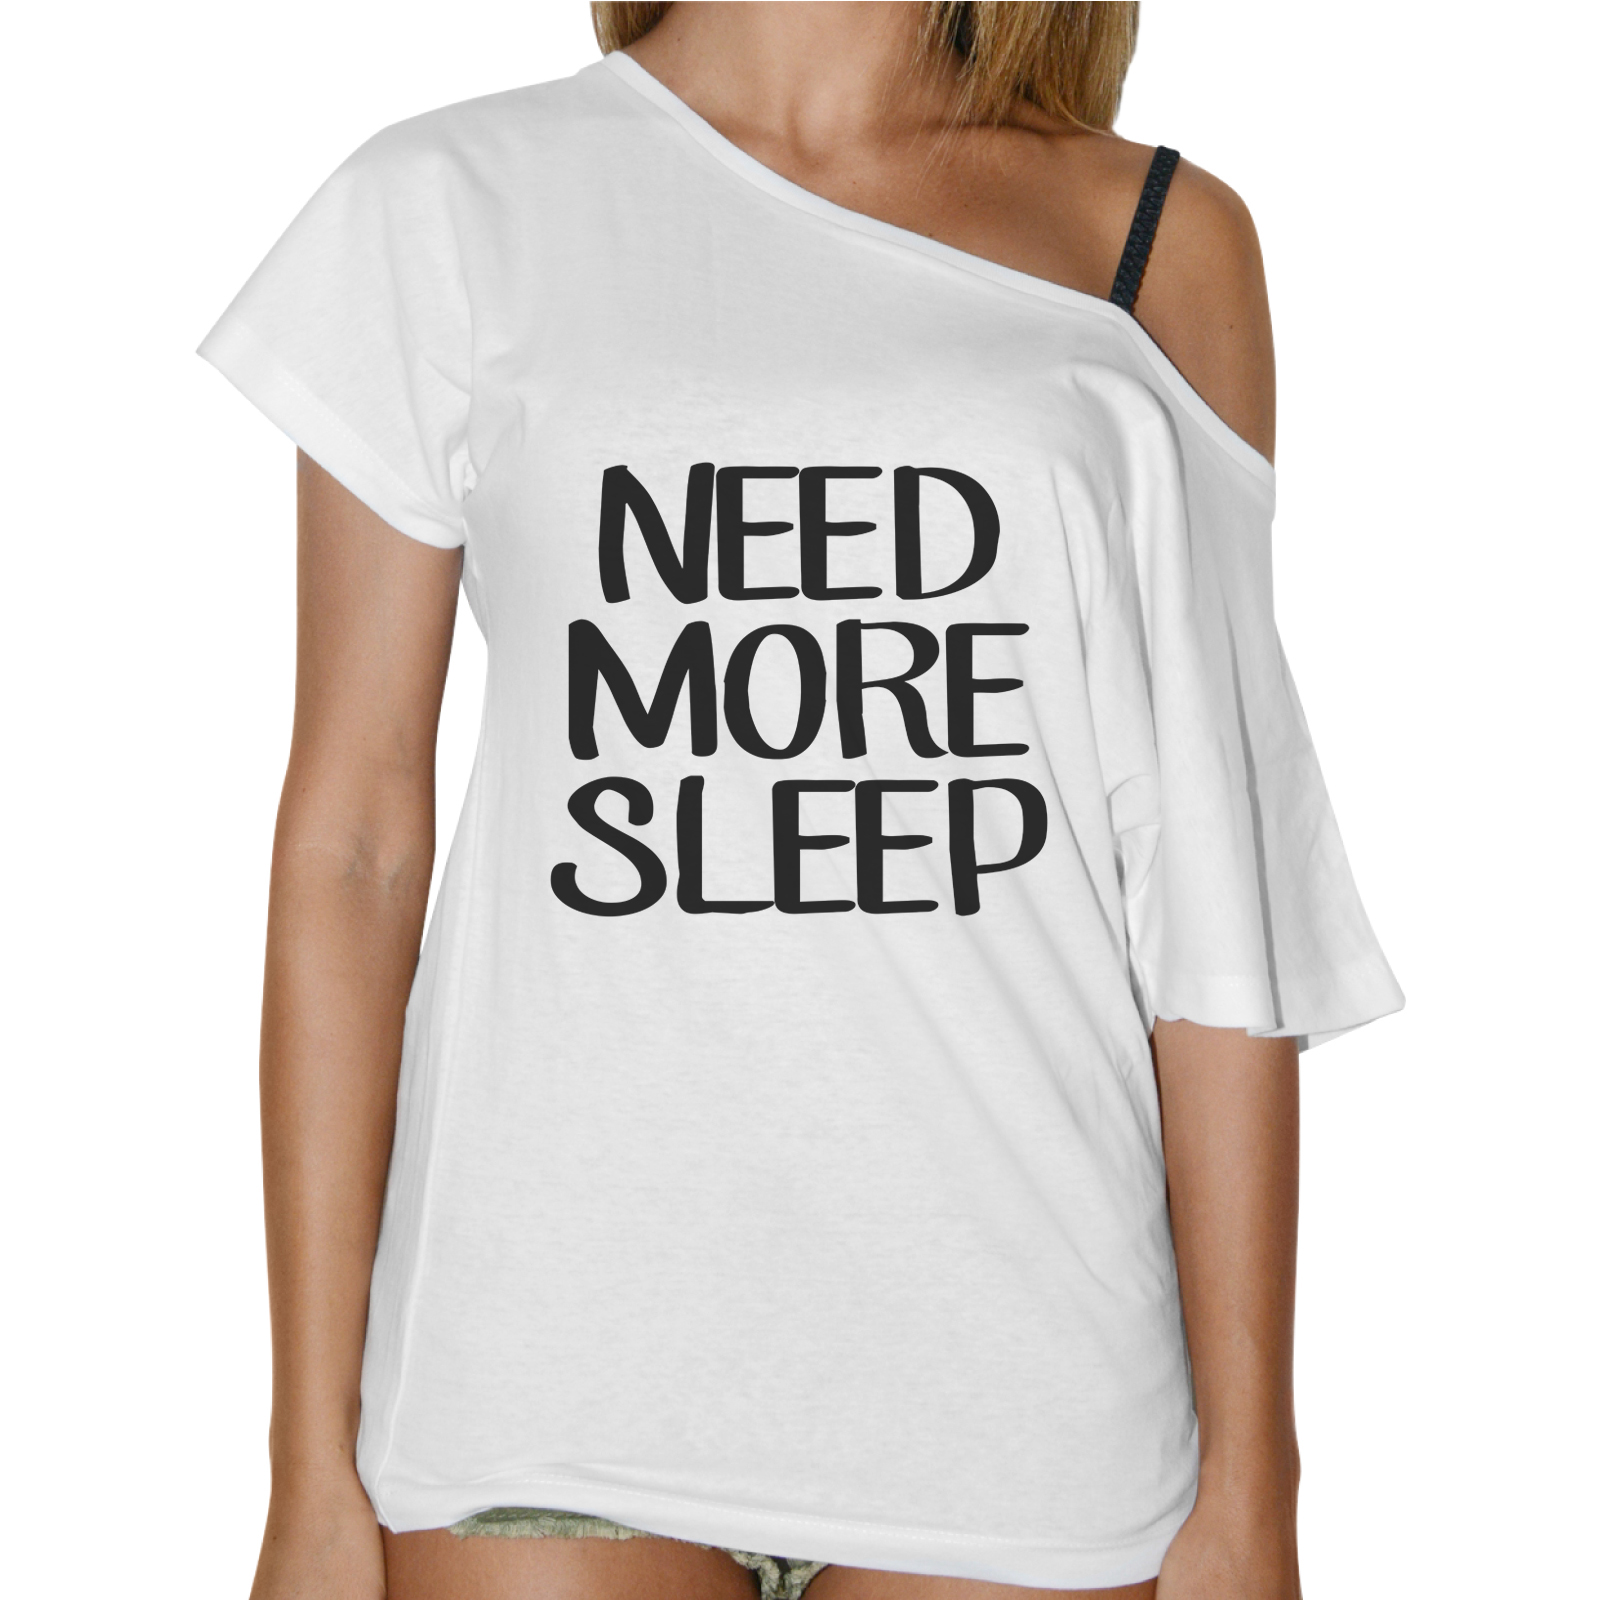 T-Shirt Donna Collo Barca NEED MORE SLEEP